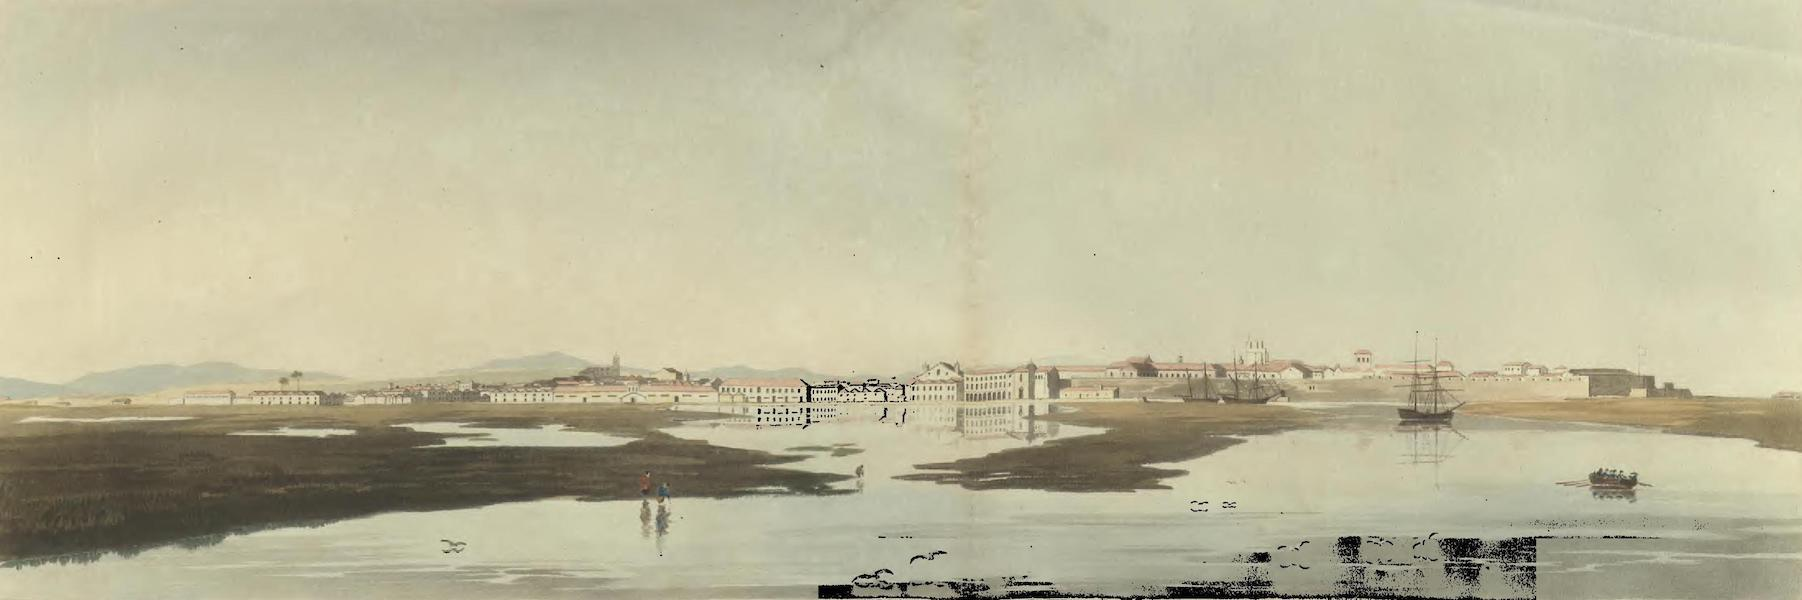 Historical, Military, and Picturesque Observations on Portugal Vol. 2 - Faro, the Capital of the Algarve (1818)